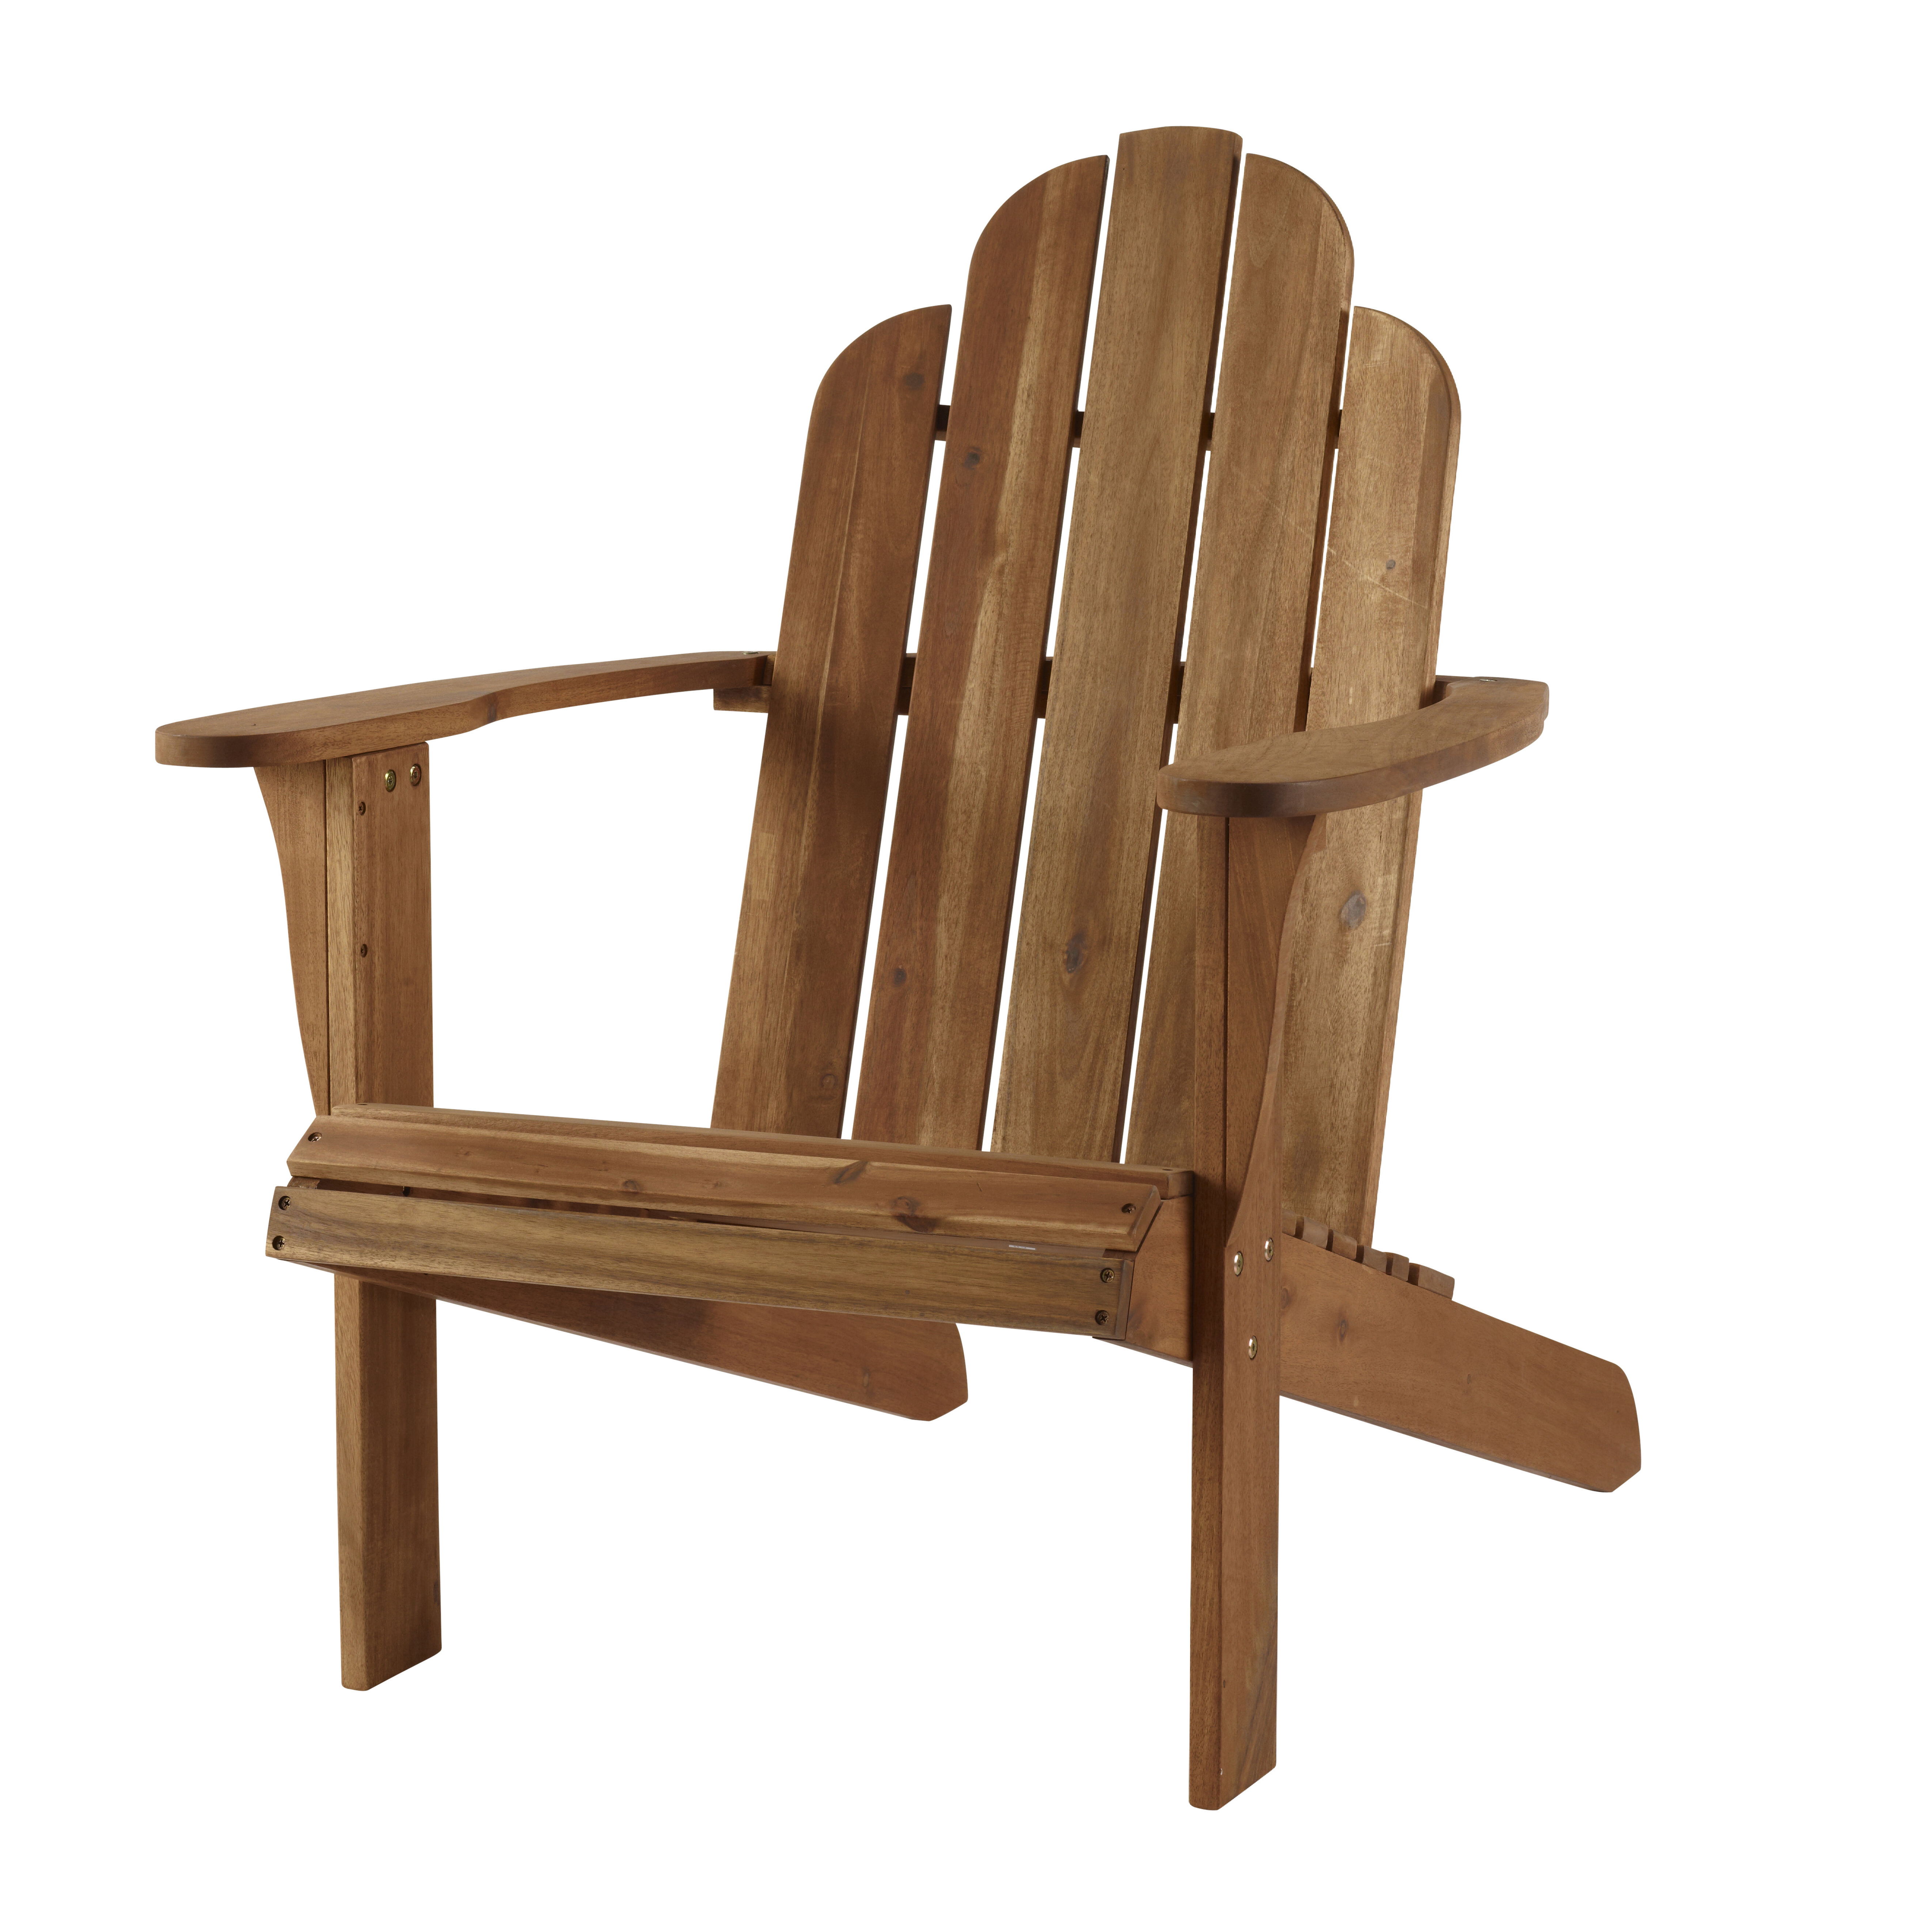 Beachcrest Home Knowlson Solid Wood Adirondack Chair With Regard To Trendy Mahogany Adirondack Chairs With Ottoman (View 12 of 25)